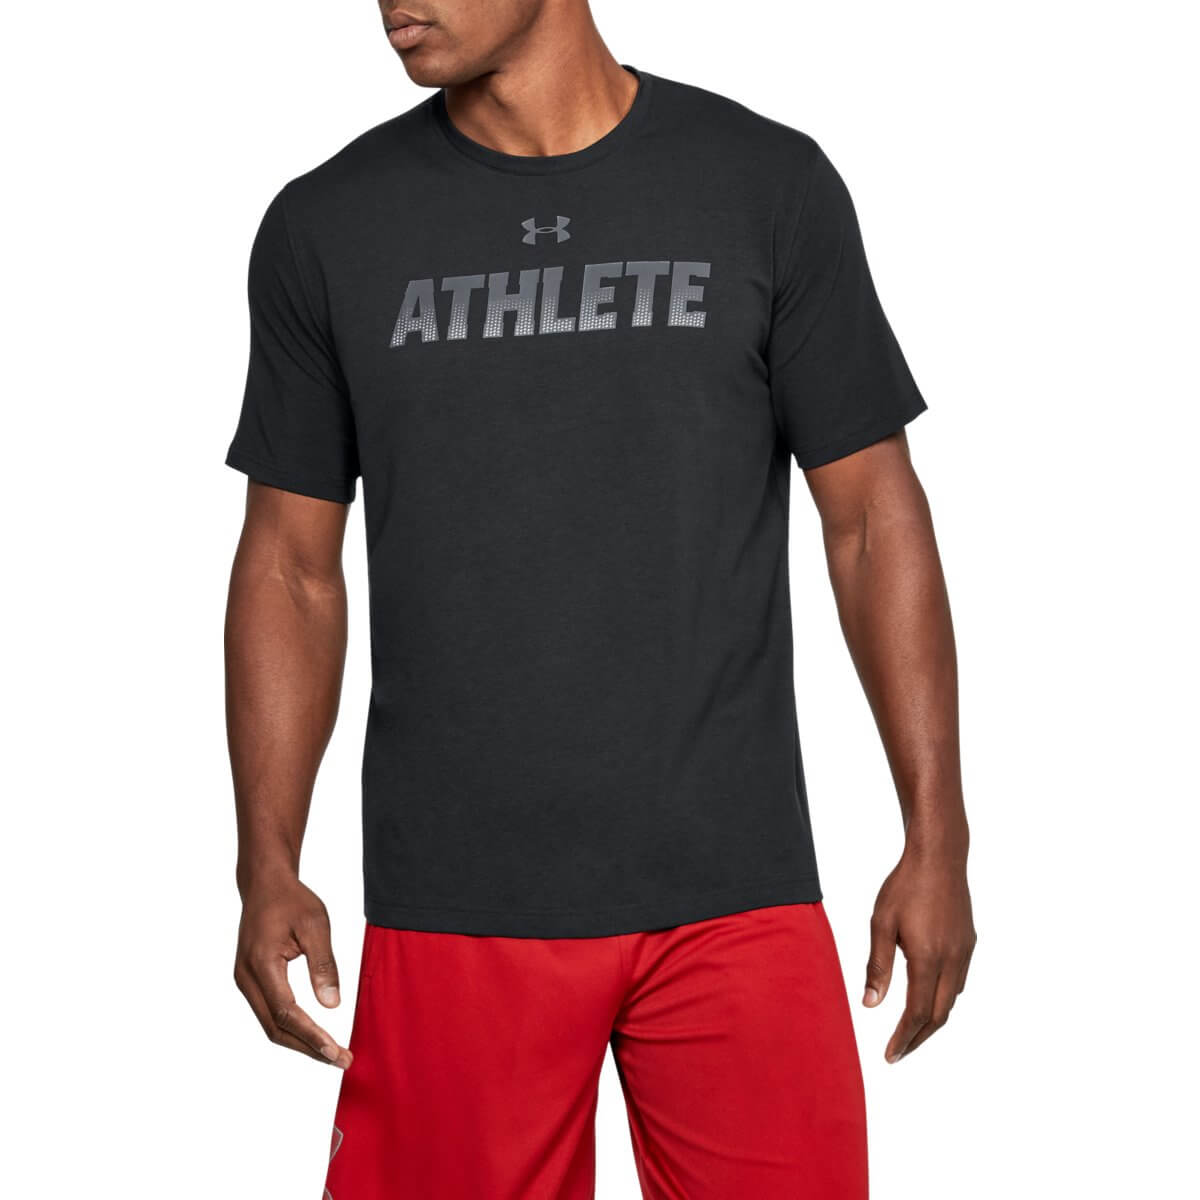 Under Armour Tričko Athlete SS Black L